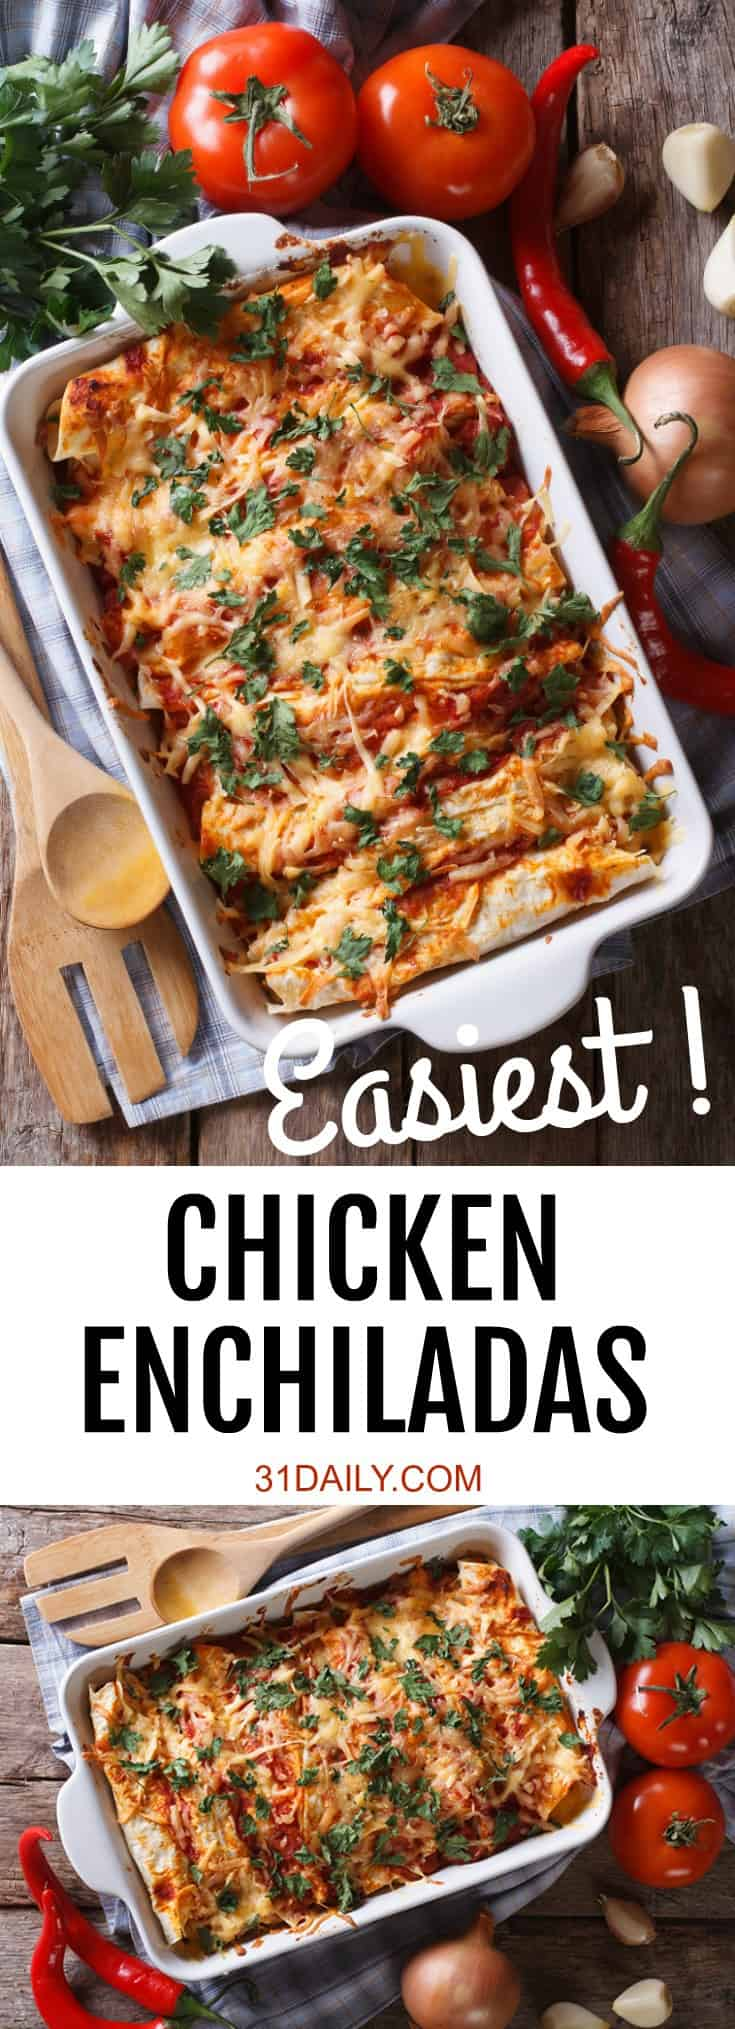 Easiest Chicken Enchiladas Ever with Leftover Chicken | 31Daily.com